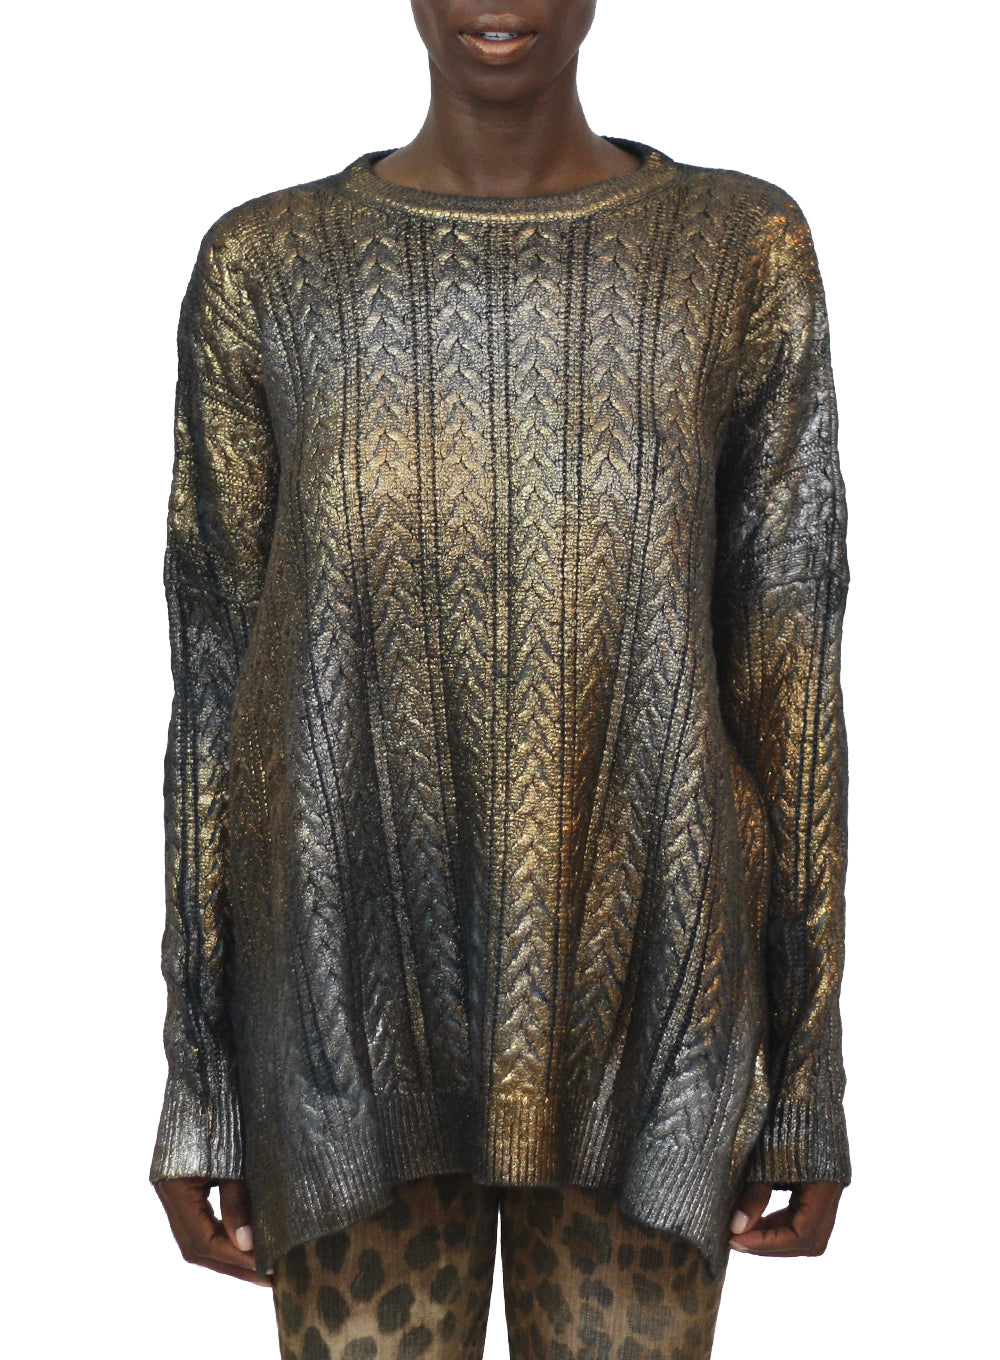 AVANT TOI | Degradè Gold/Nero Crewneck Sweater